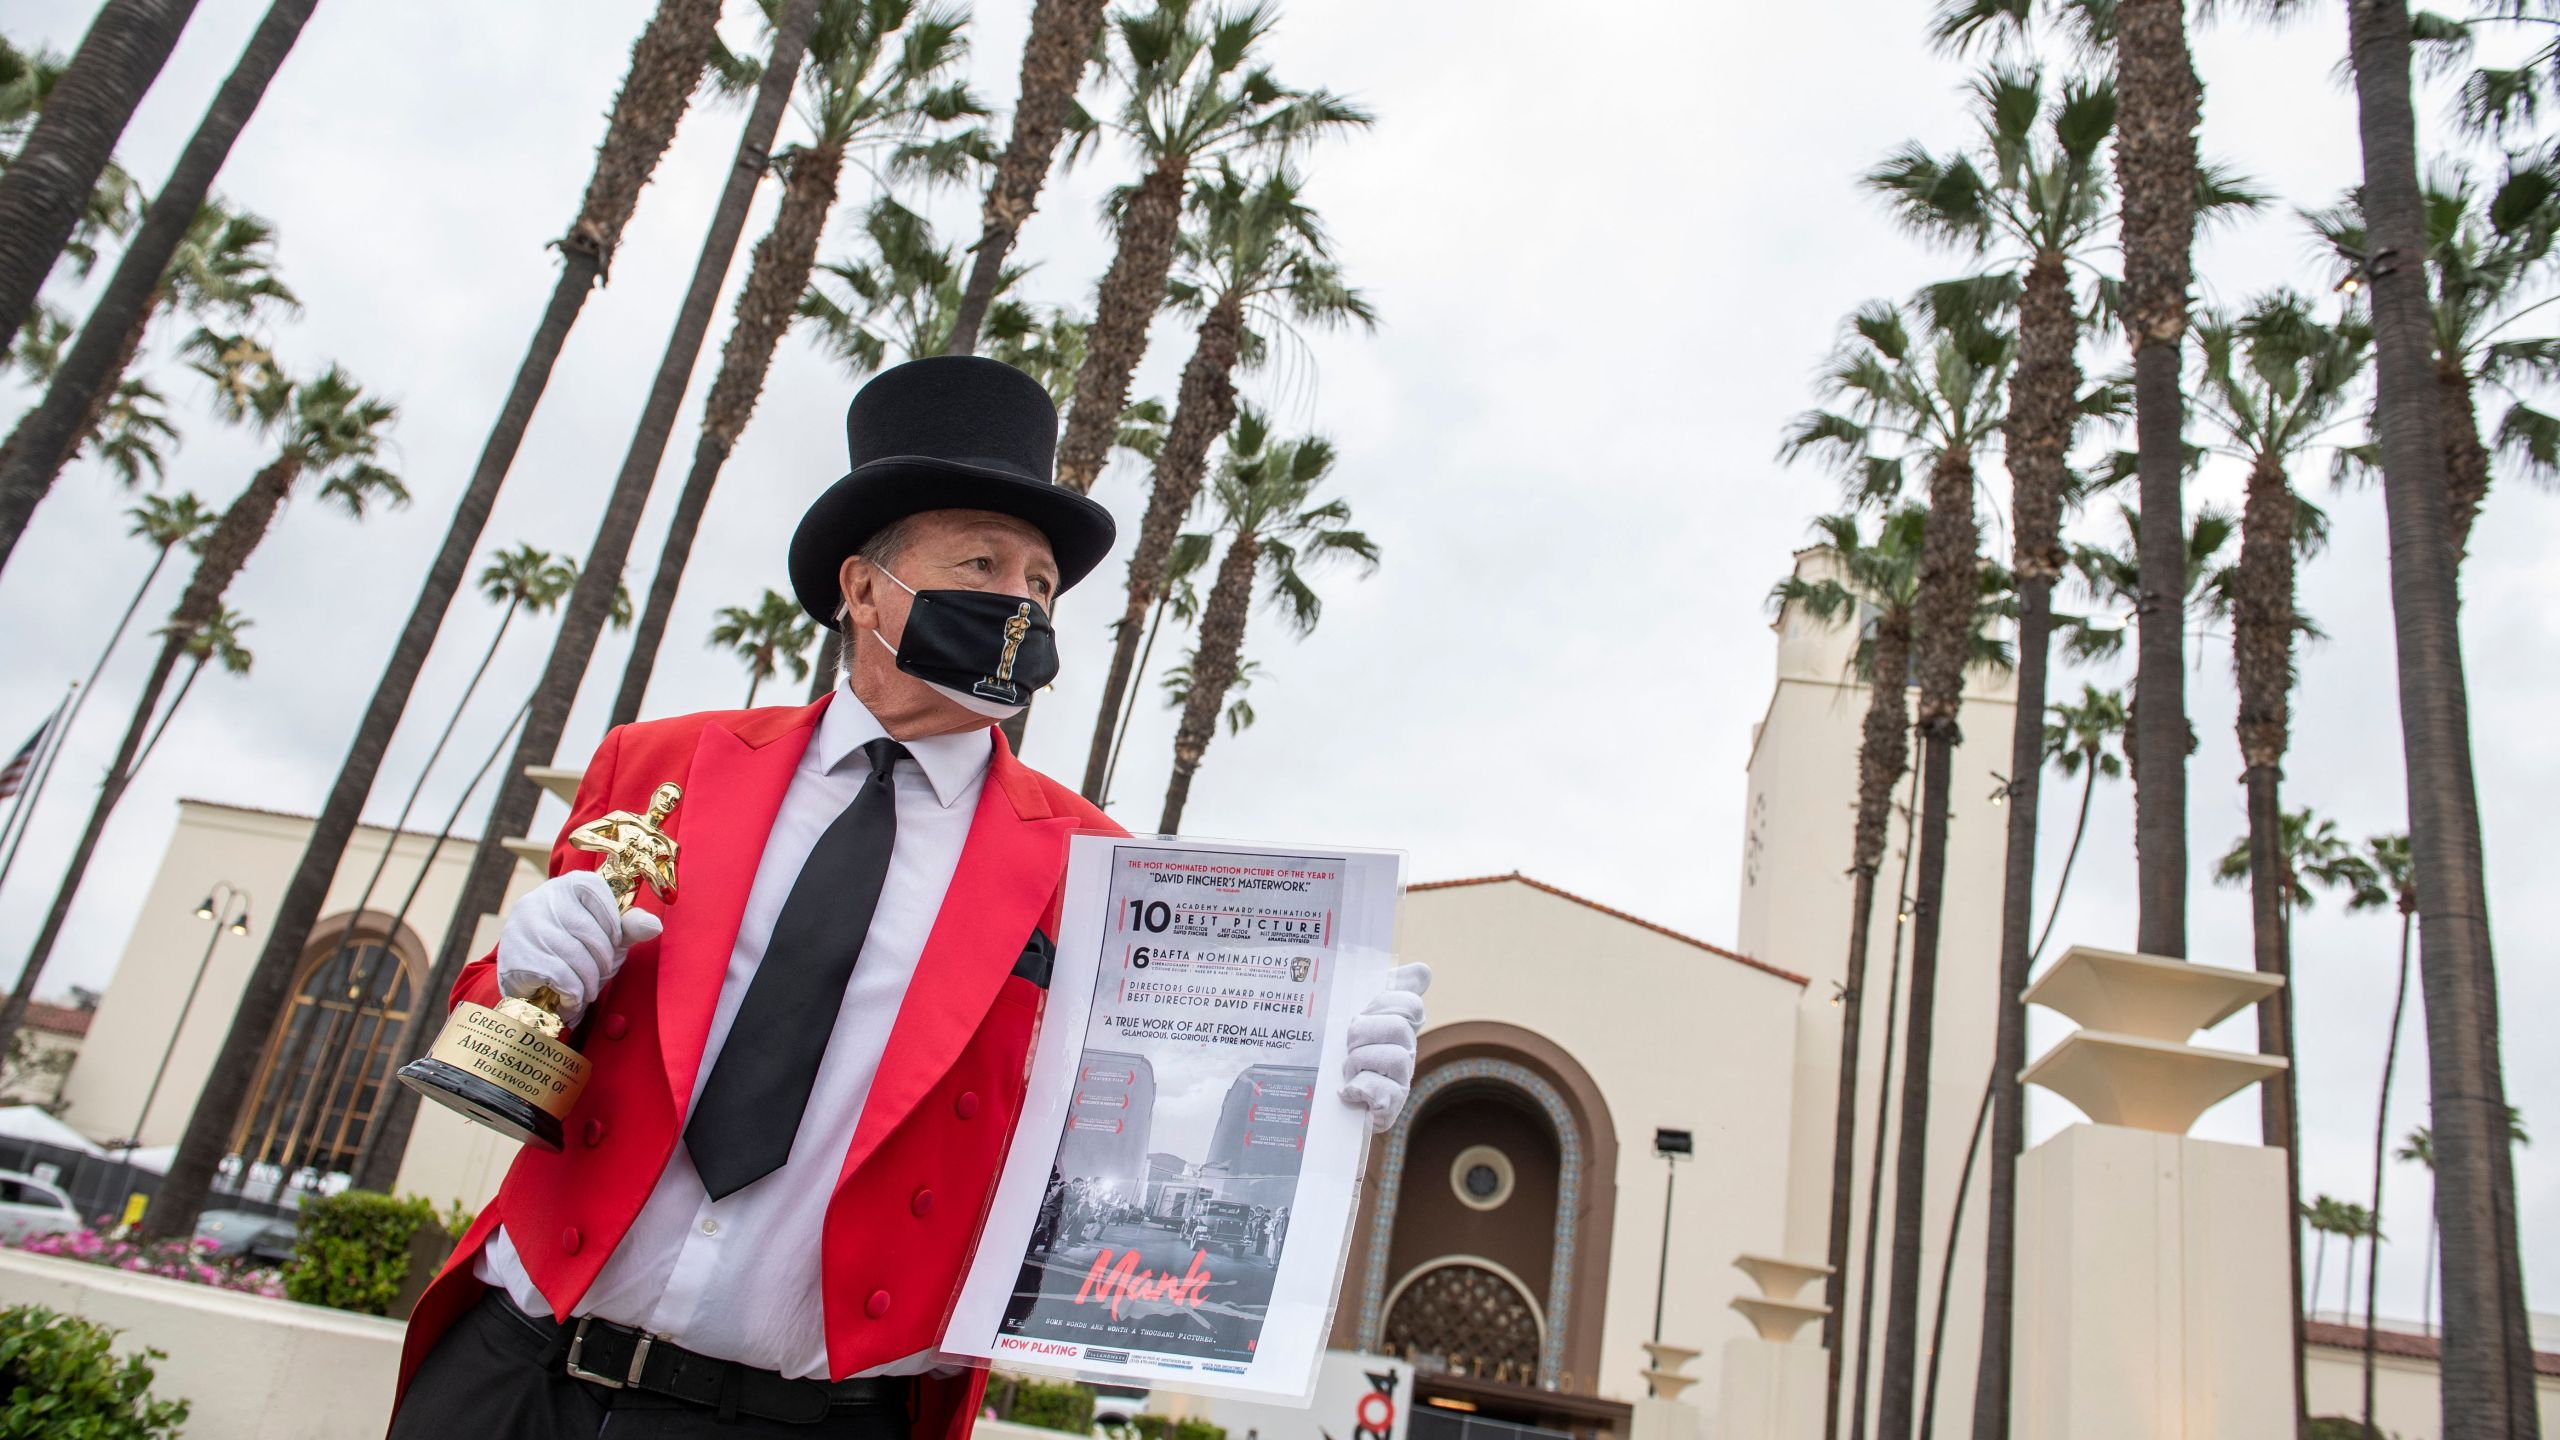 Gregg Donovan holds a fake Oscar statuette and a poster of one of the movies he believes will be a winner in front of Union Station during preparations for the 93rd Academy Awards in Los Angeles, California on April 23, 2021. (Valerie Macon/AFP via Getty Images)